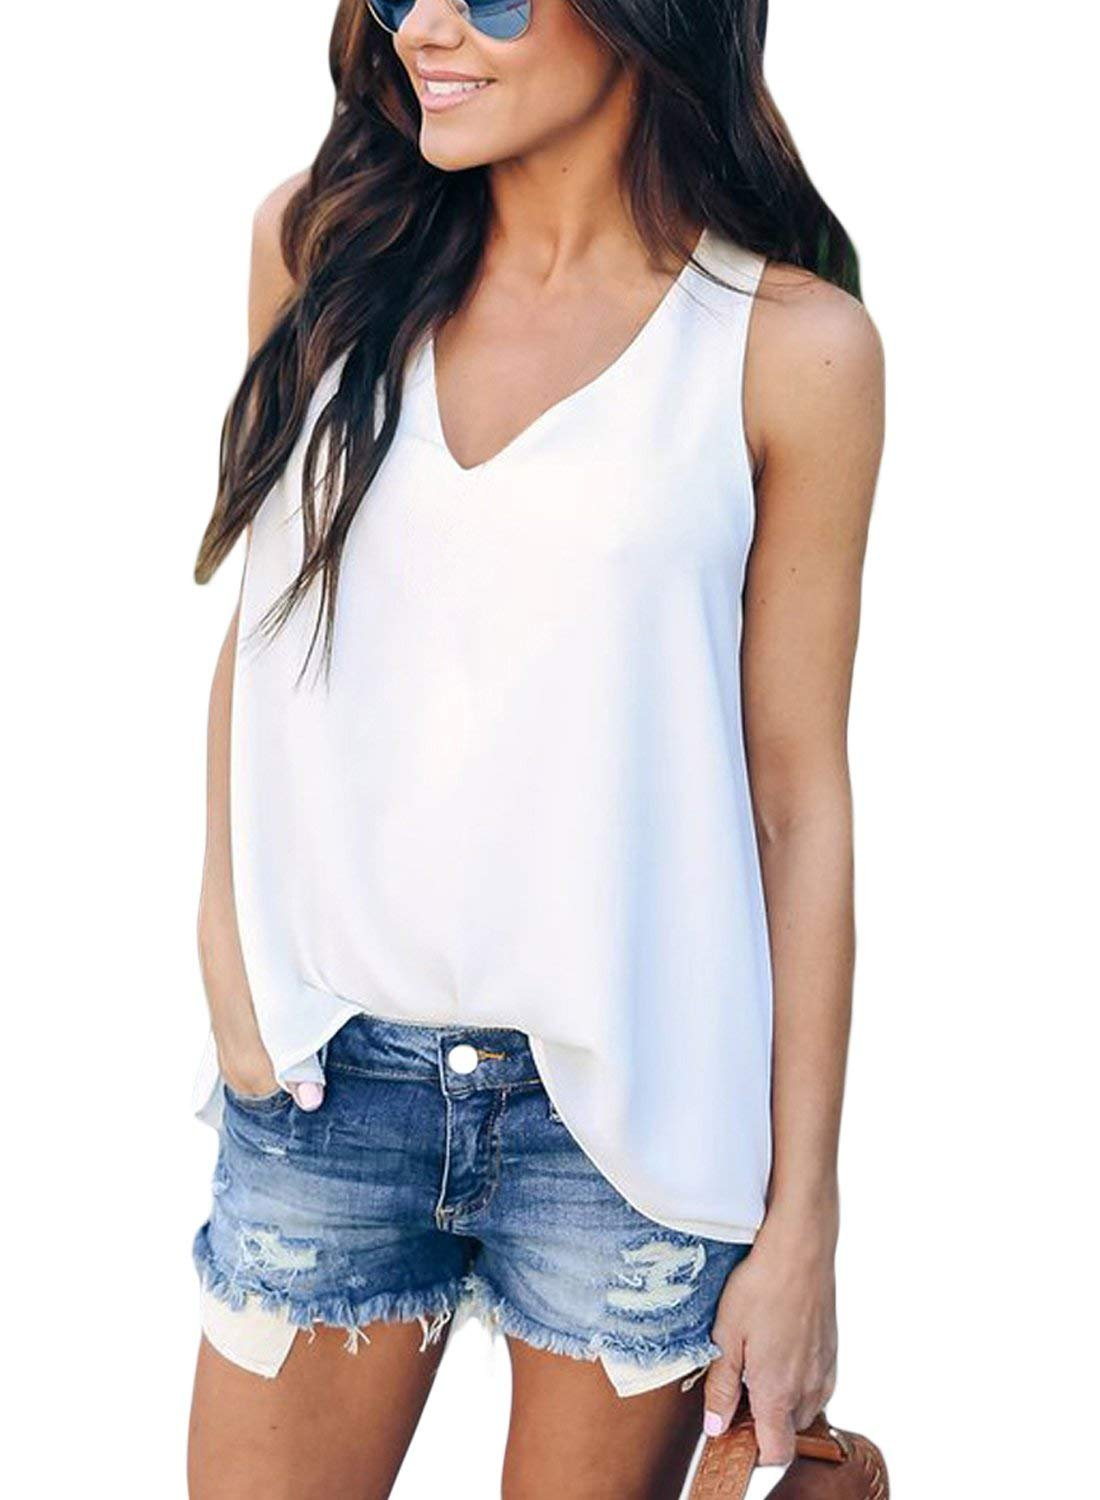 OLYHA Women's V Neck Sleeveless Tank Tops Casual Flowy Sexy Cami Blouse Shirts (White, (US 4-6) Small)